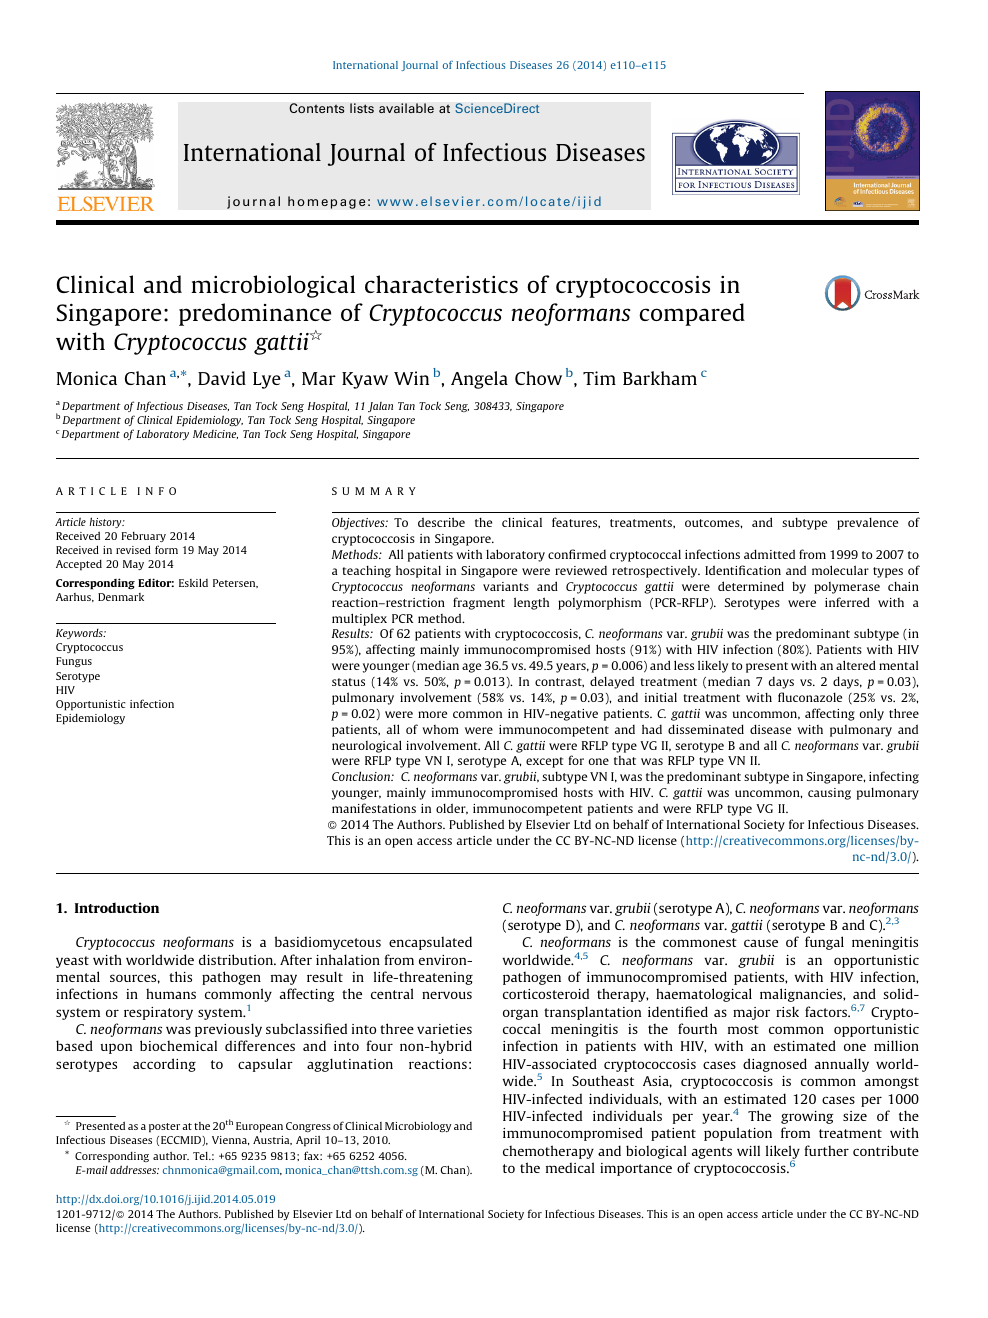 Clinical and microbiological characteristics of cryptococcosis in